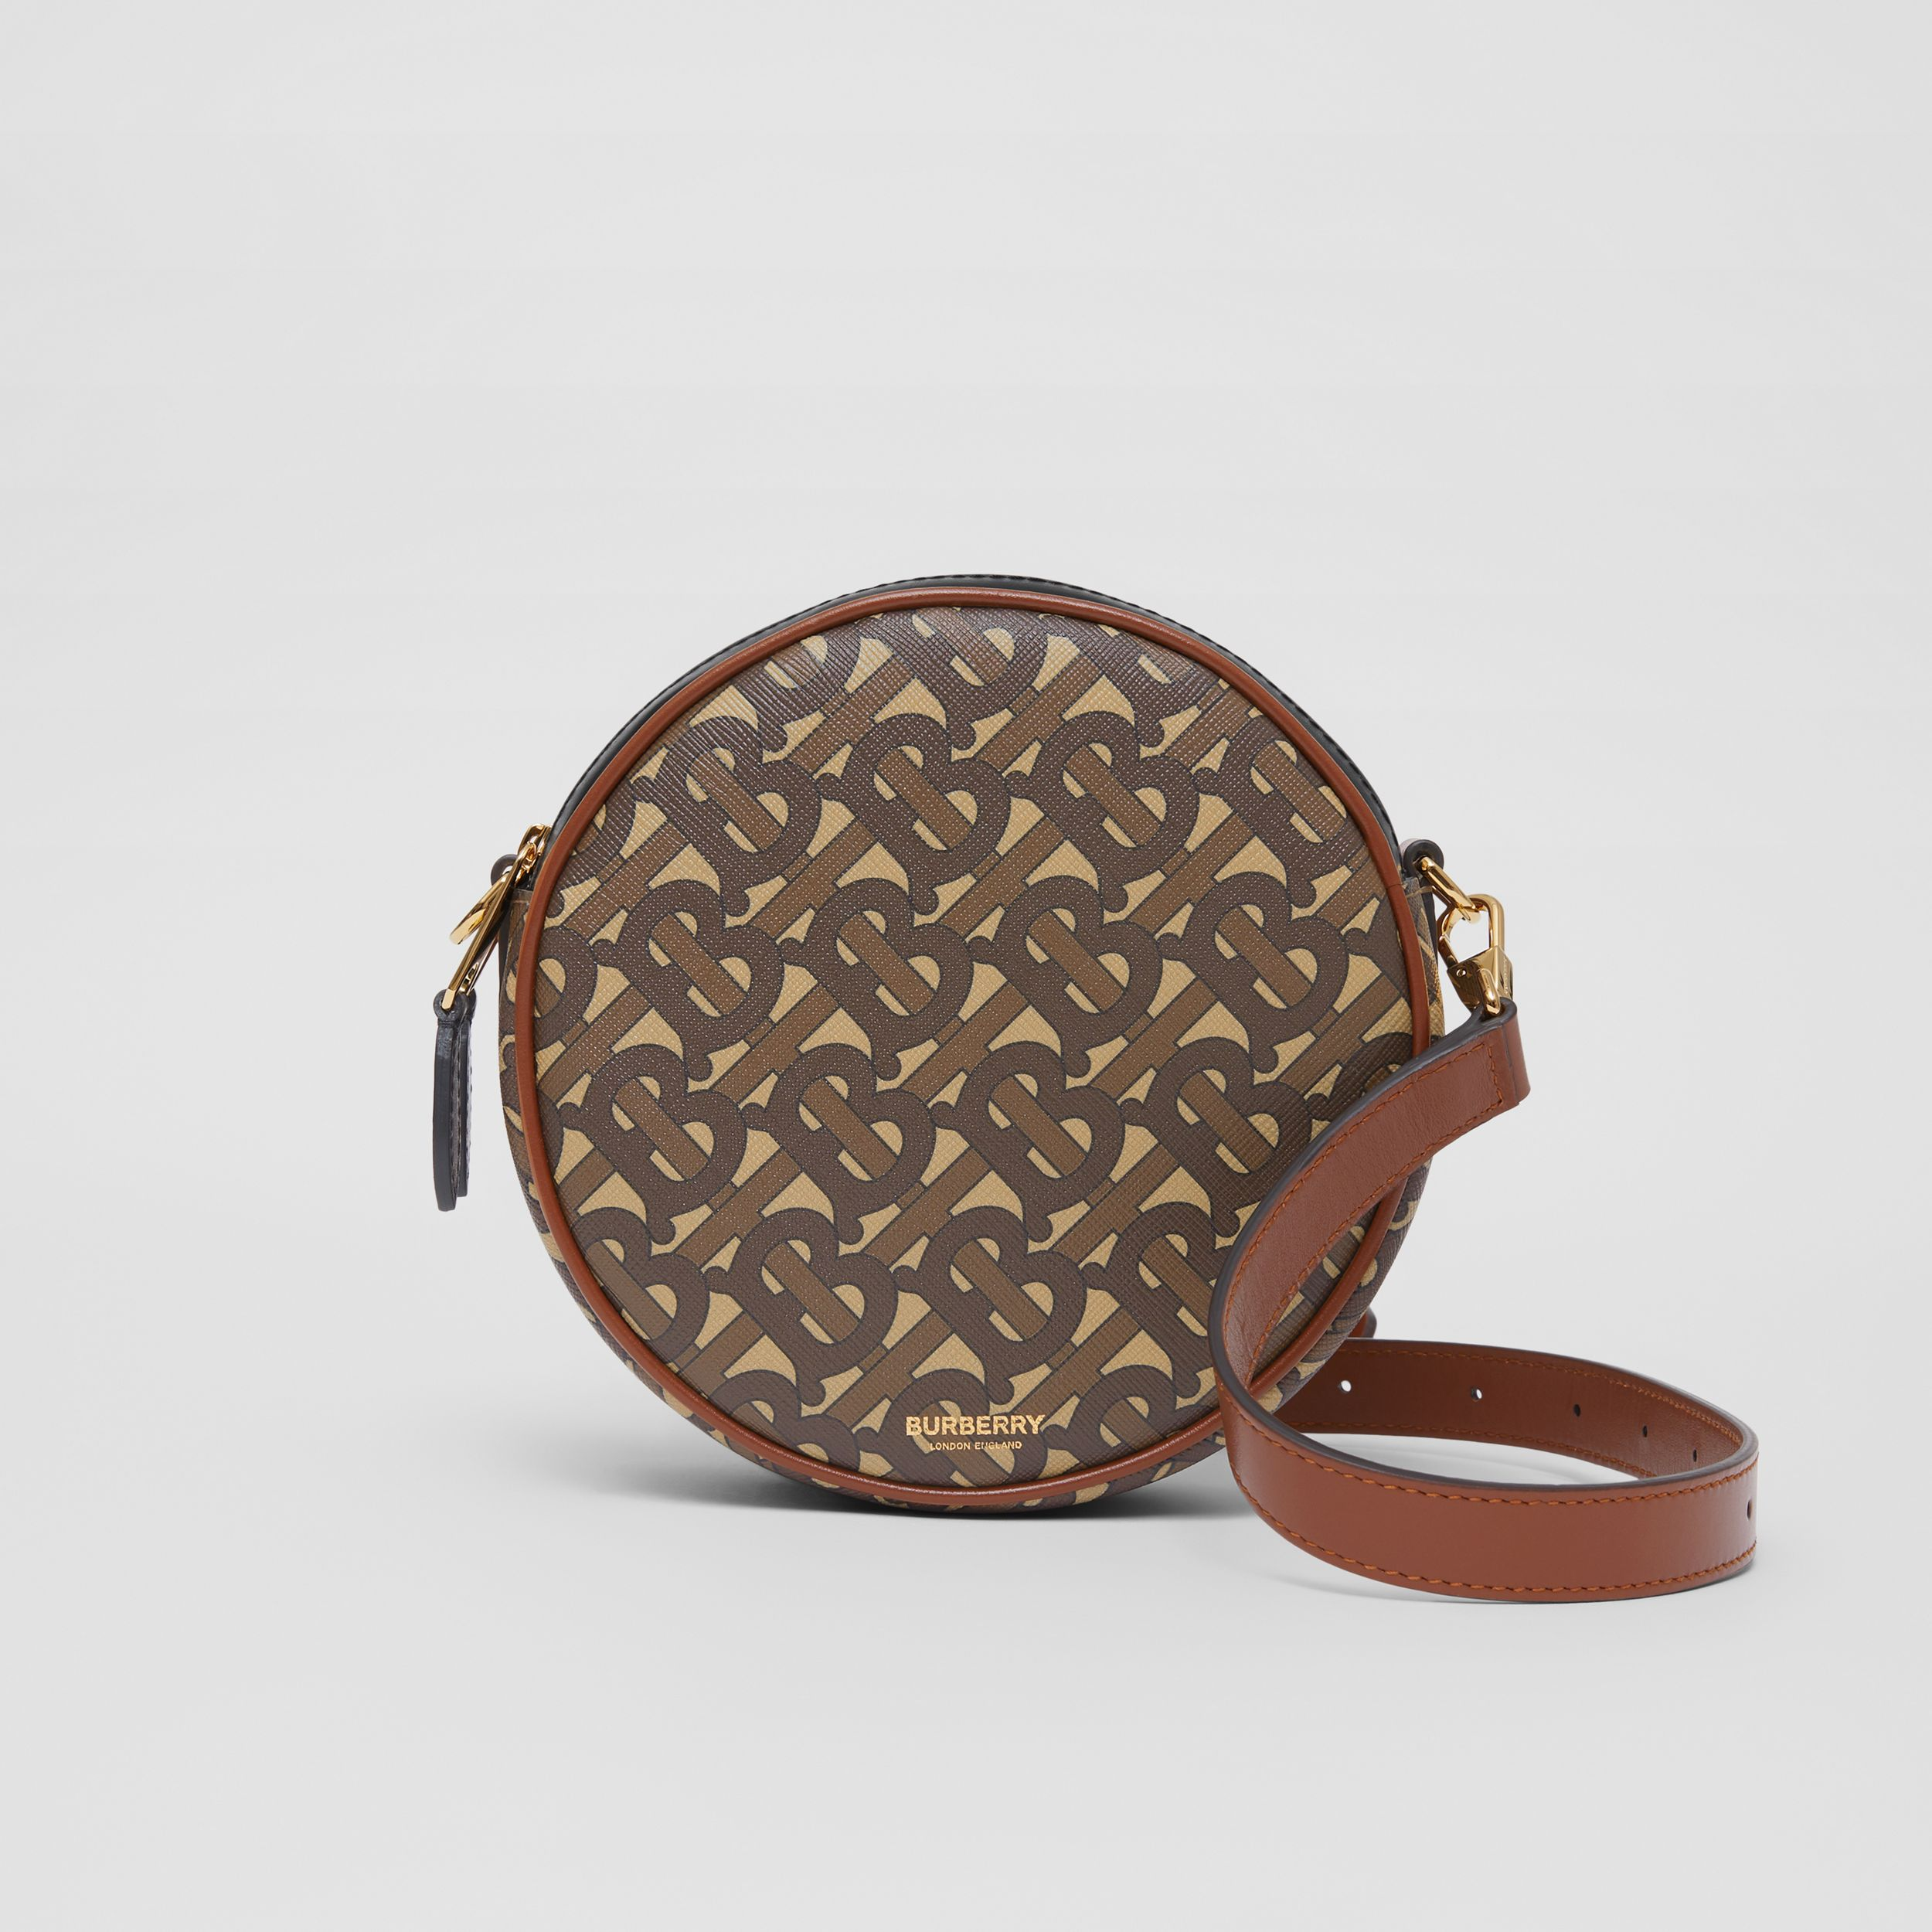 Monogram Print E-canvas Louise Bag in Bridle Brown - Women | Burberry - 1